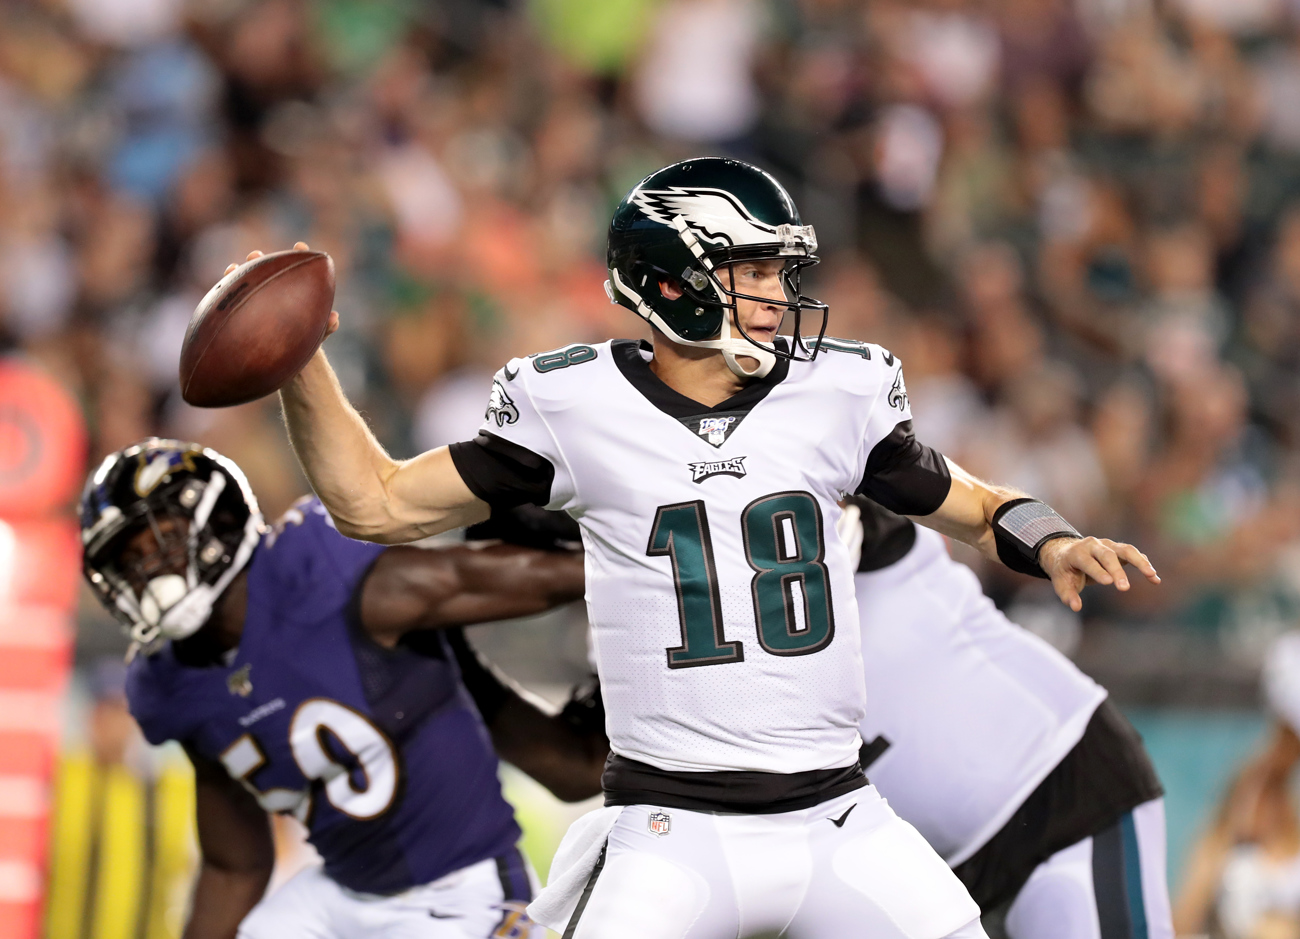 How did Eagles' Josh McCown play in debut vs. Ravens? Grading the QB's performance